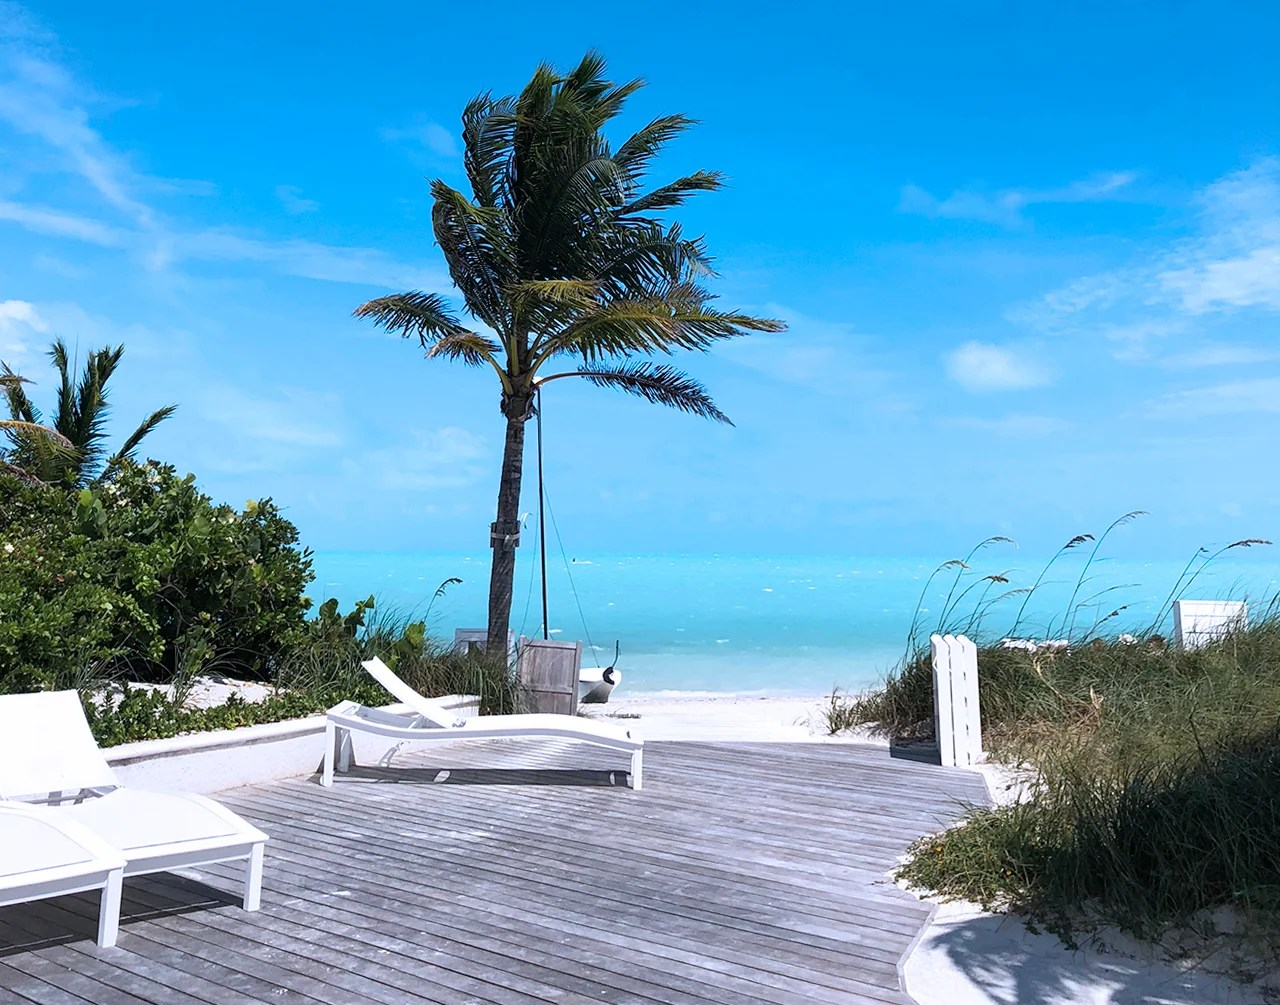 6 Reasons Why I Love Turks and Caicos